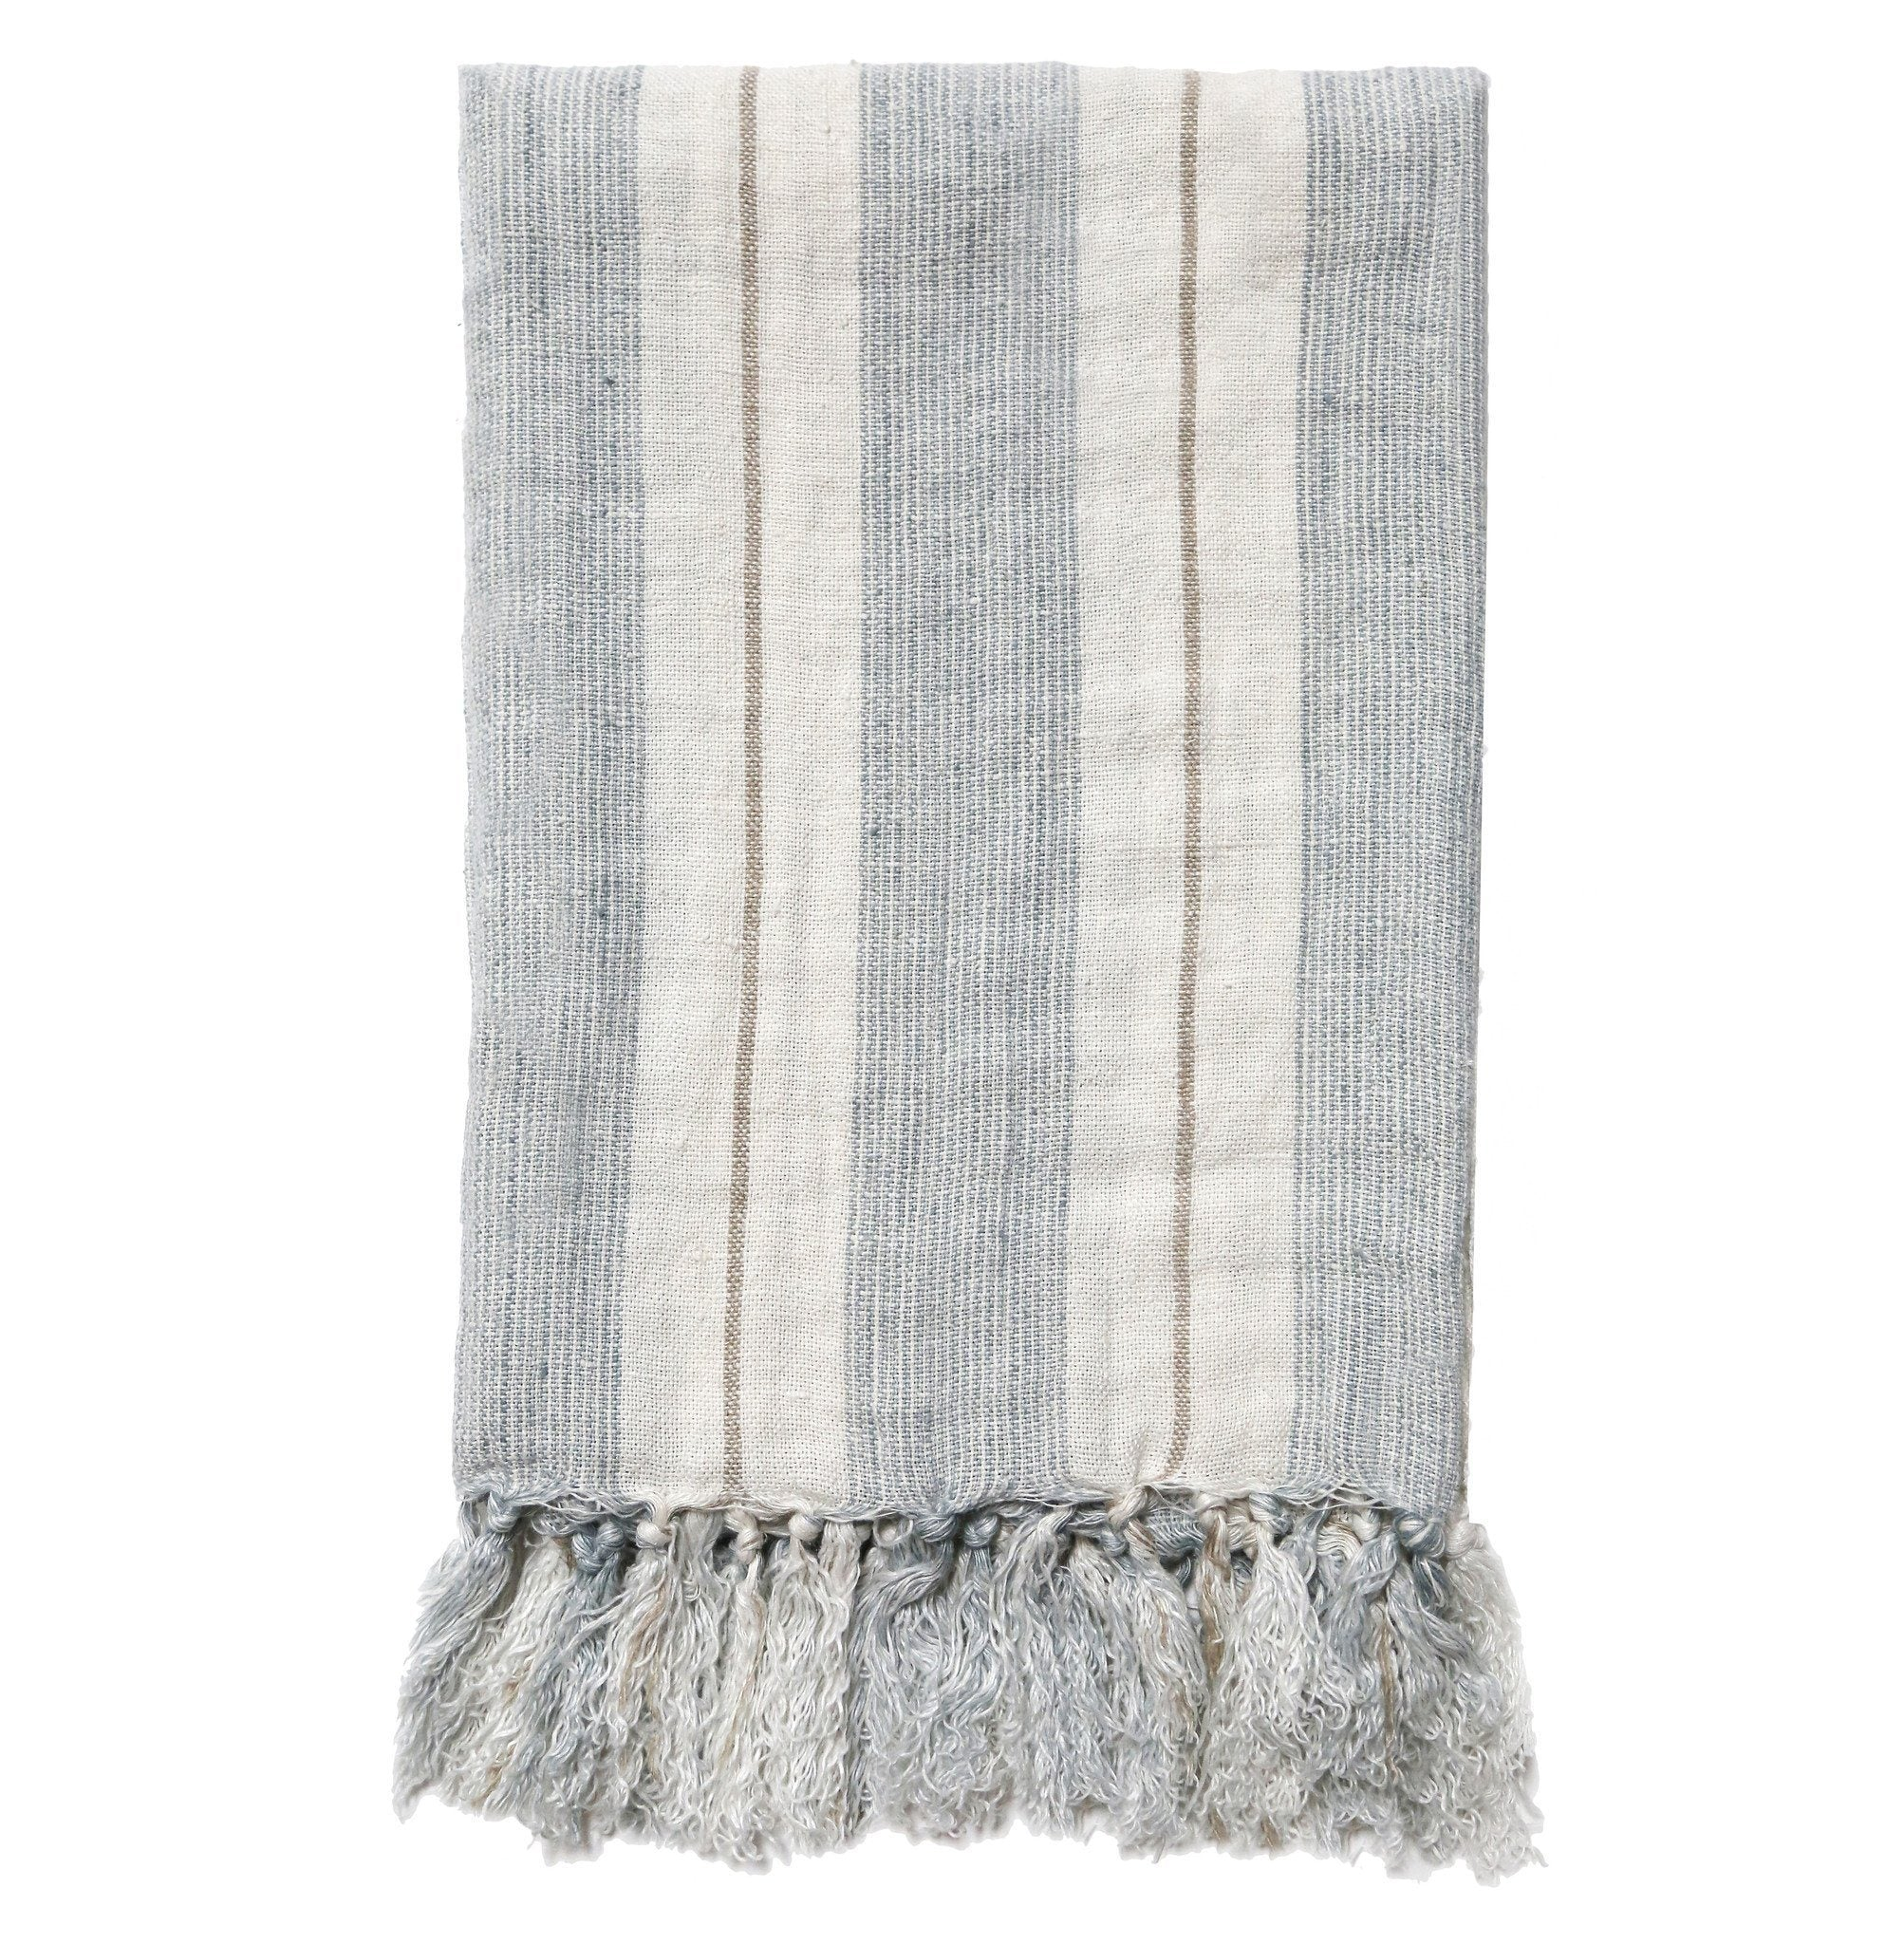 Pom Pom at Home - Laguna Ocean & Natural Linen Throw - Fig Linens